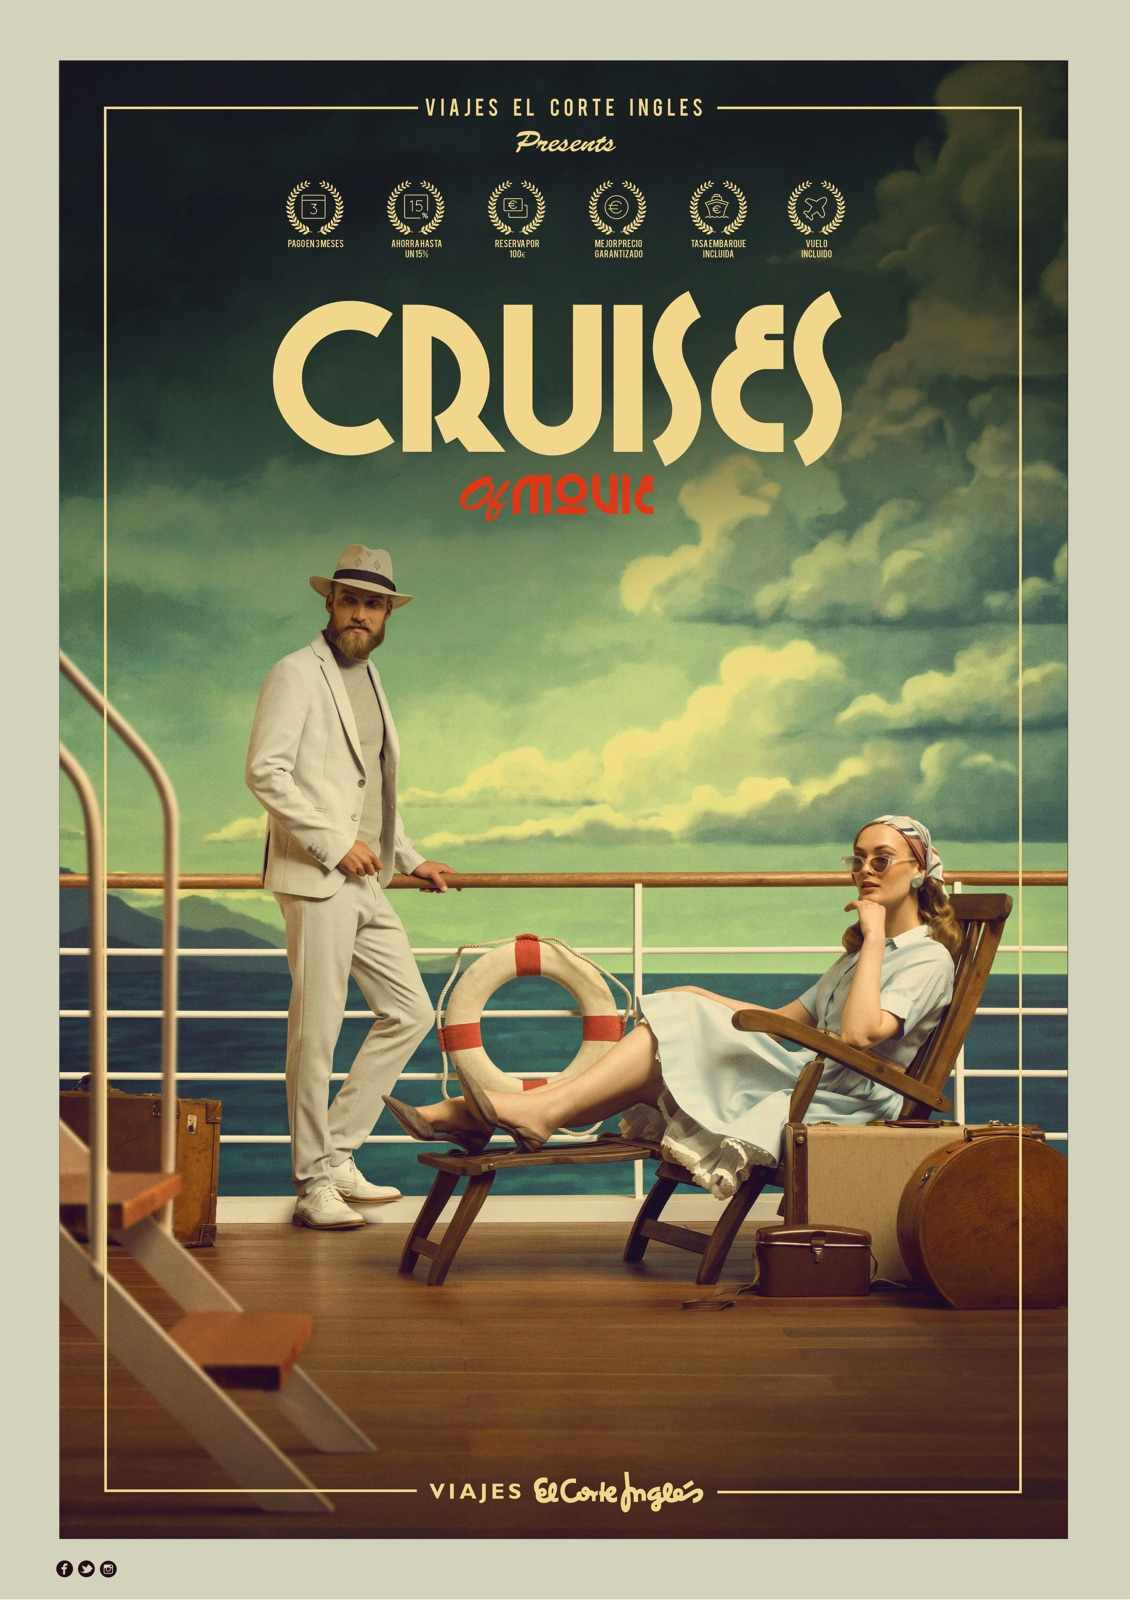 Viajes el Corte Ingles Print Ad - Cruises of Movie